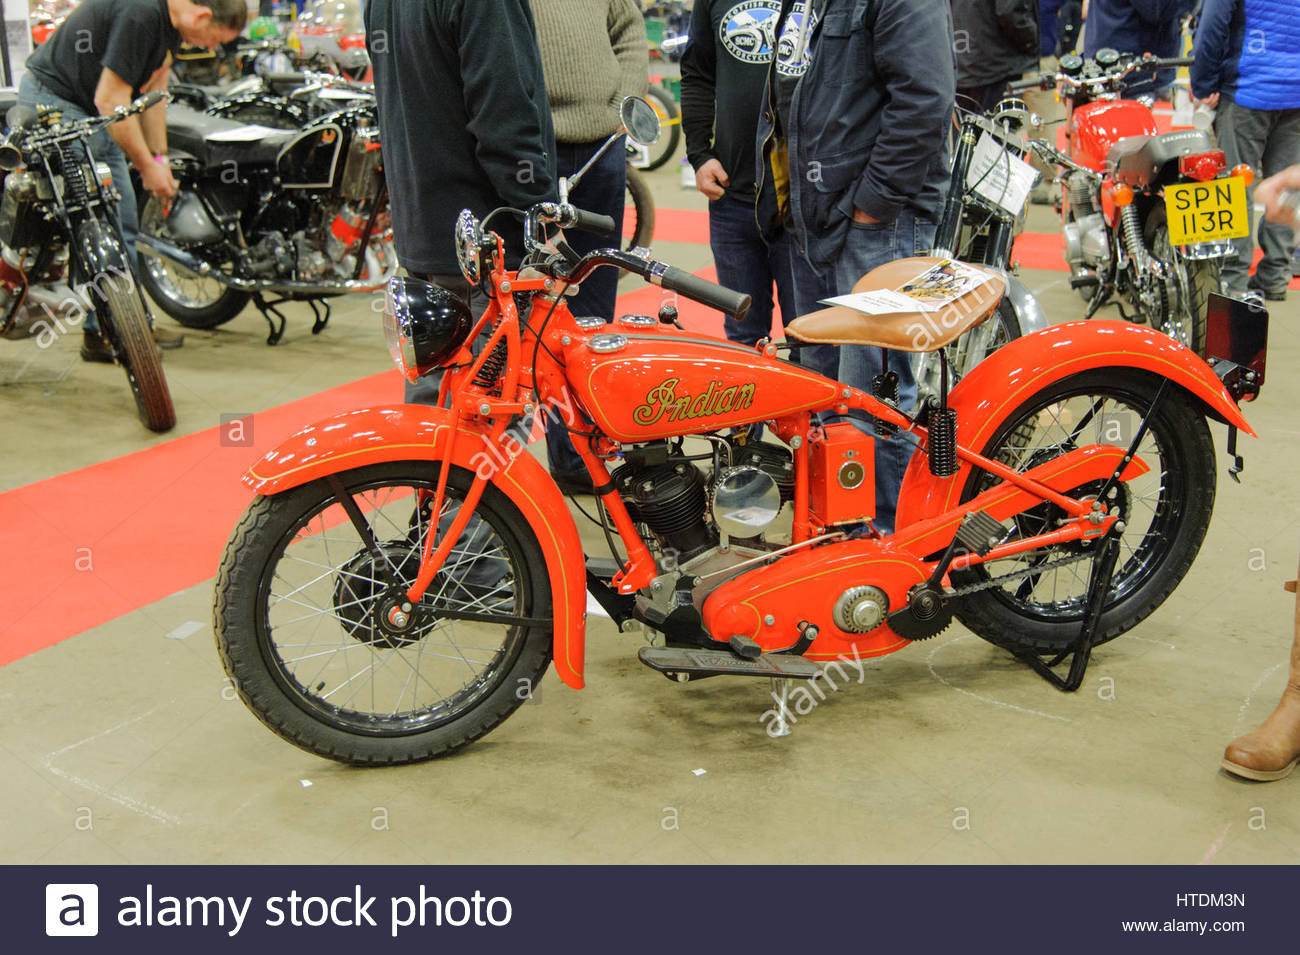 Edinburgh, UK. 11 March, 2017. A vintage Indian motorcycle at the Carole Nash MCN Scottish Motorcycle Show. Roger - Stock Image